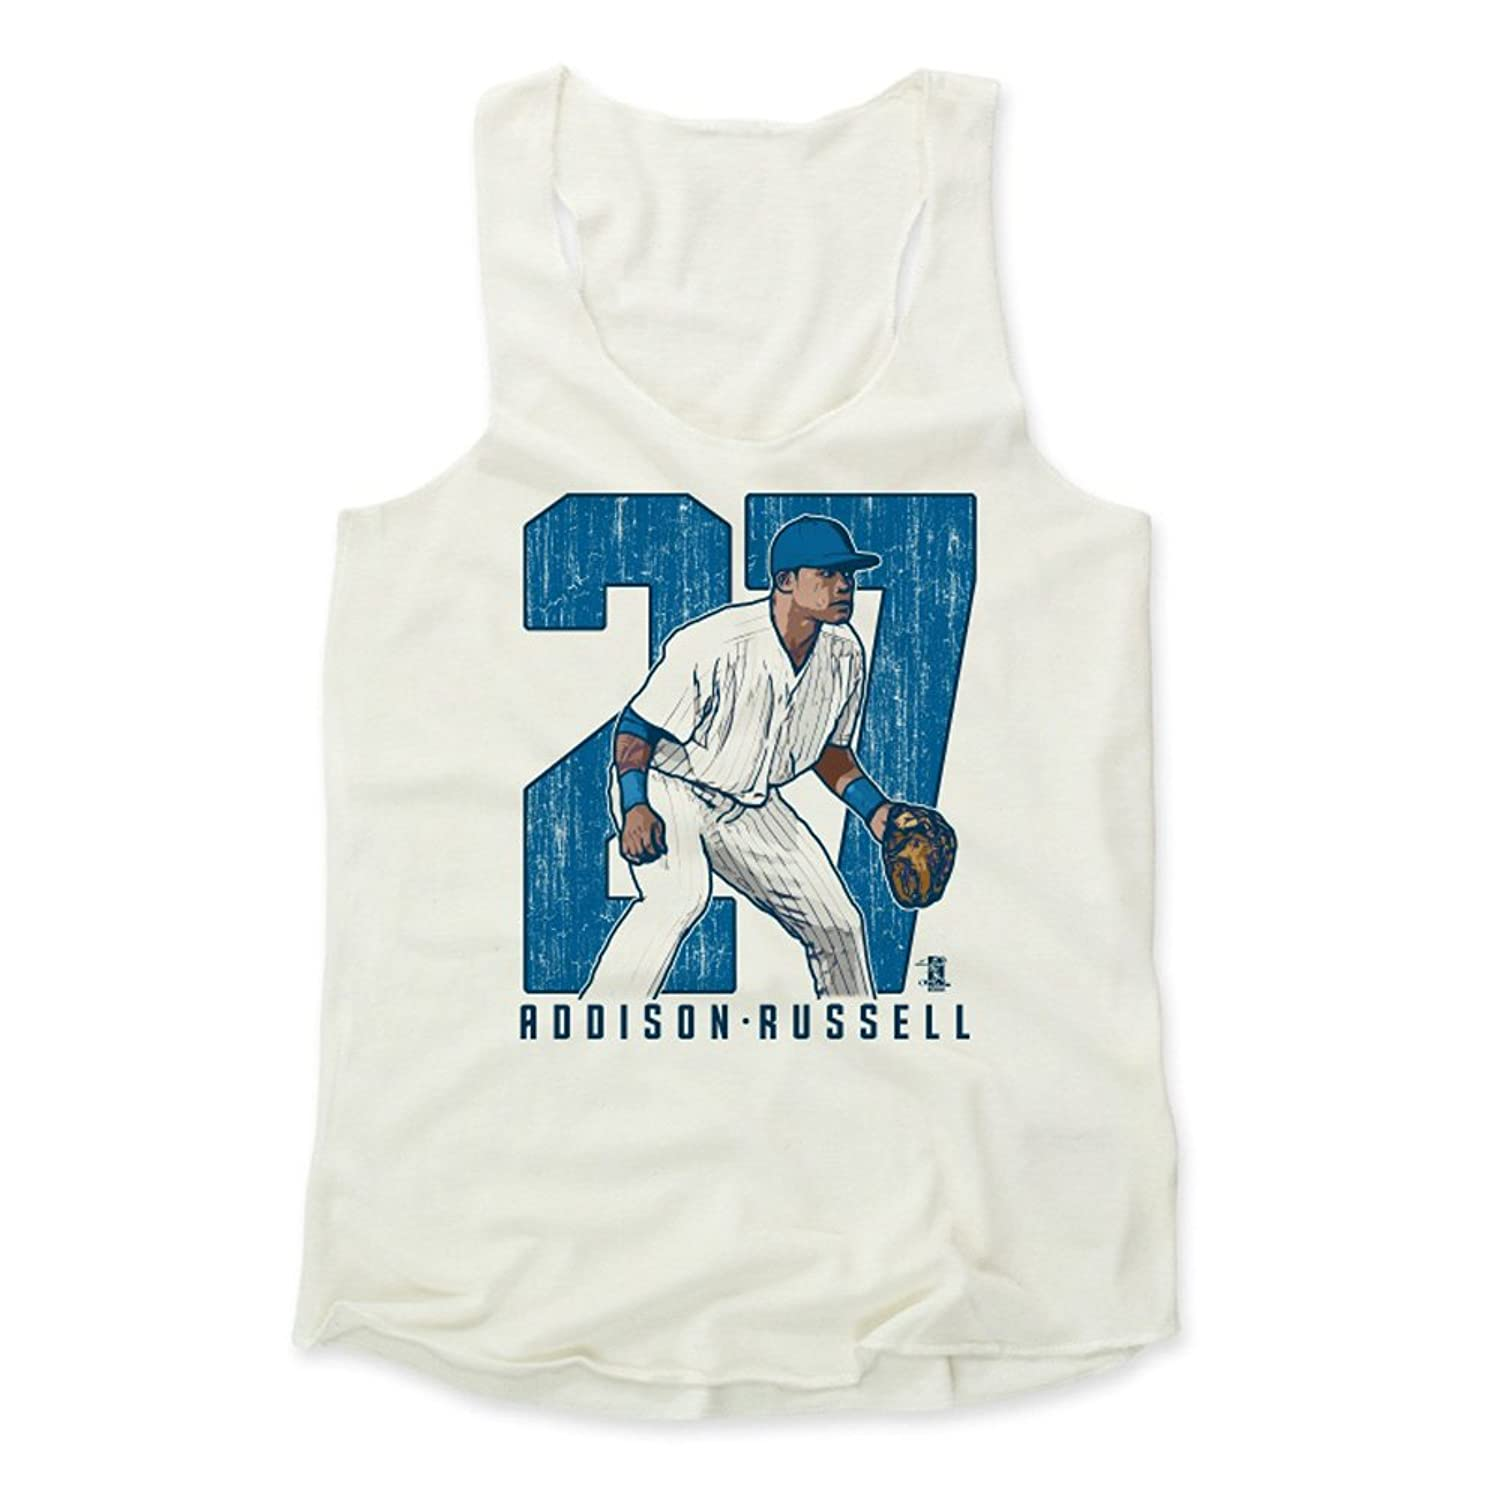 Addison Russell Clutch B Chicago Women's Tank Top